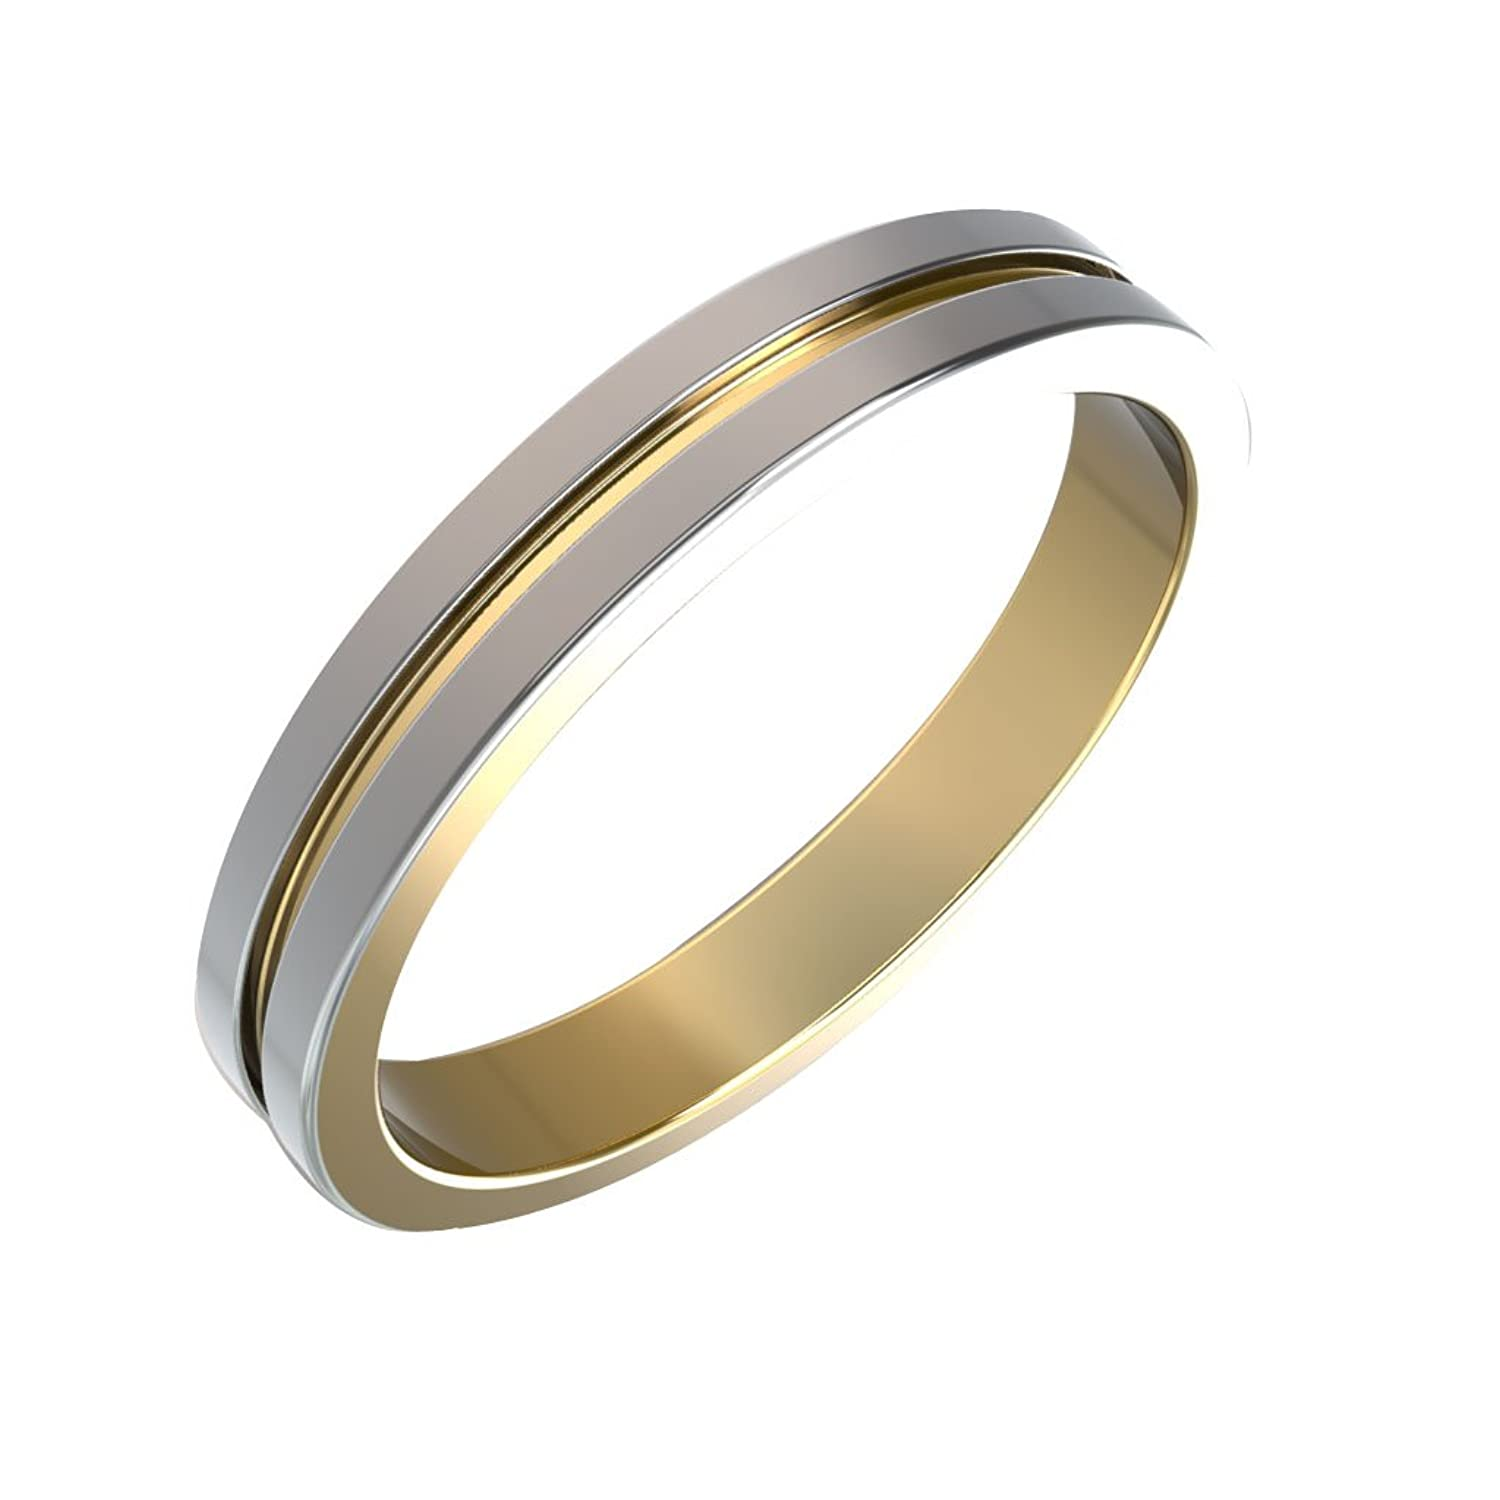 White Gold Wedding Band.14k Dual Tone Wedding Bands In White Gold And Yellow Gold Wedding Bands For Her